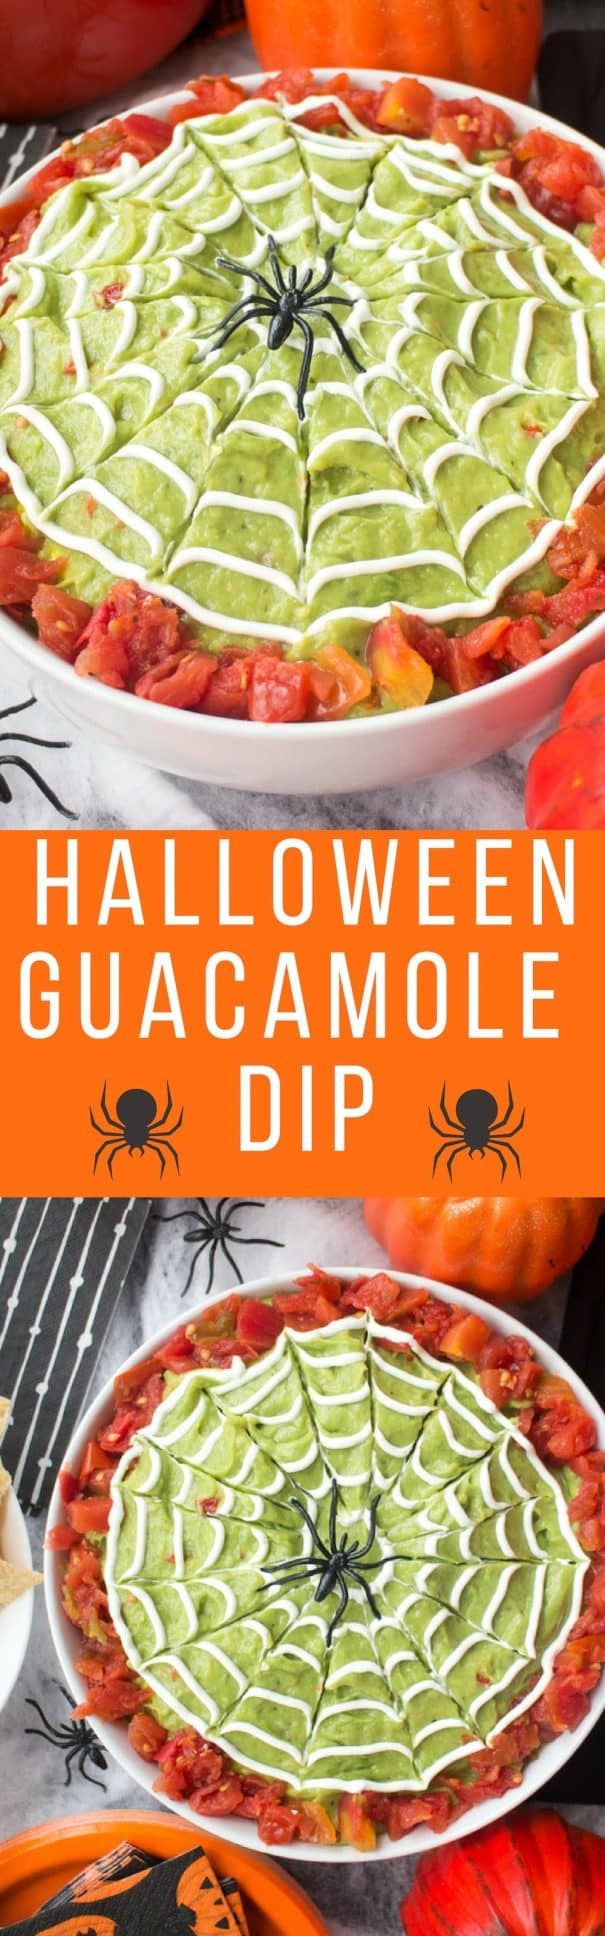 EASY Halloween Guacamole Dip recipe - perfect for healthy Halloween appetizers and party food!  This homemade recipe uses fresh avocados and canned diced tomatoes. Provides DIY tutorial on how to make spiderwebs with sour cream!